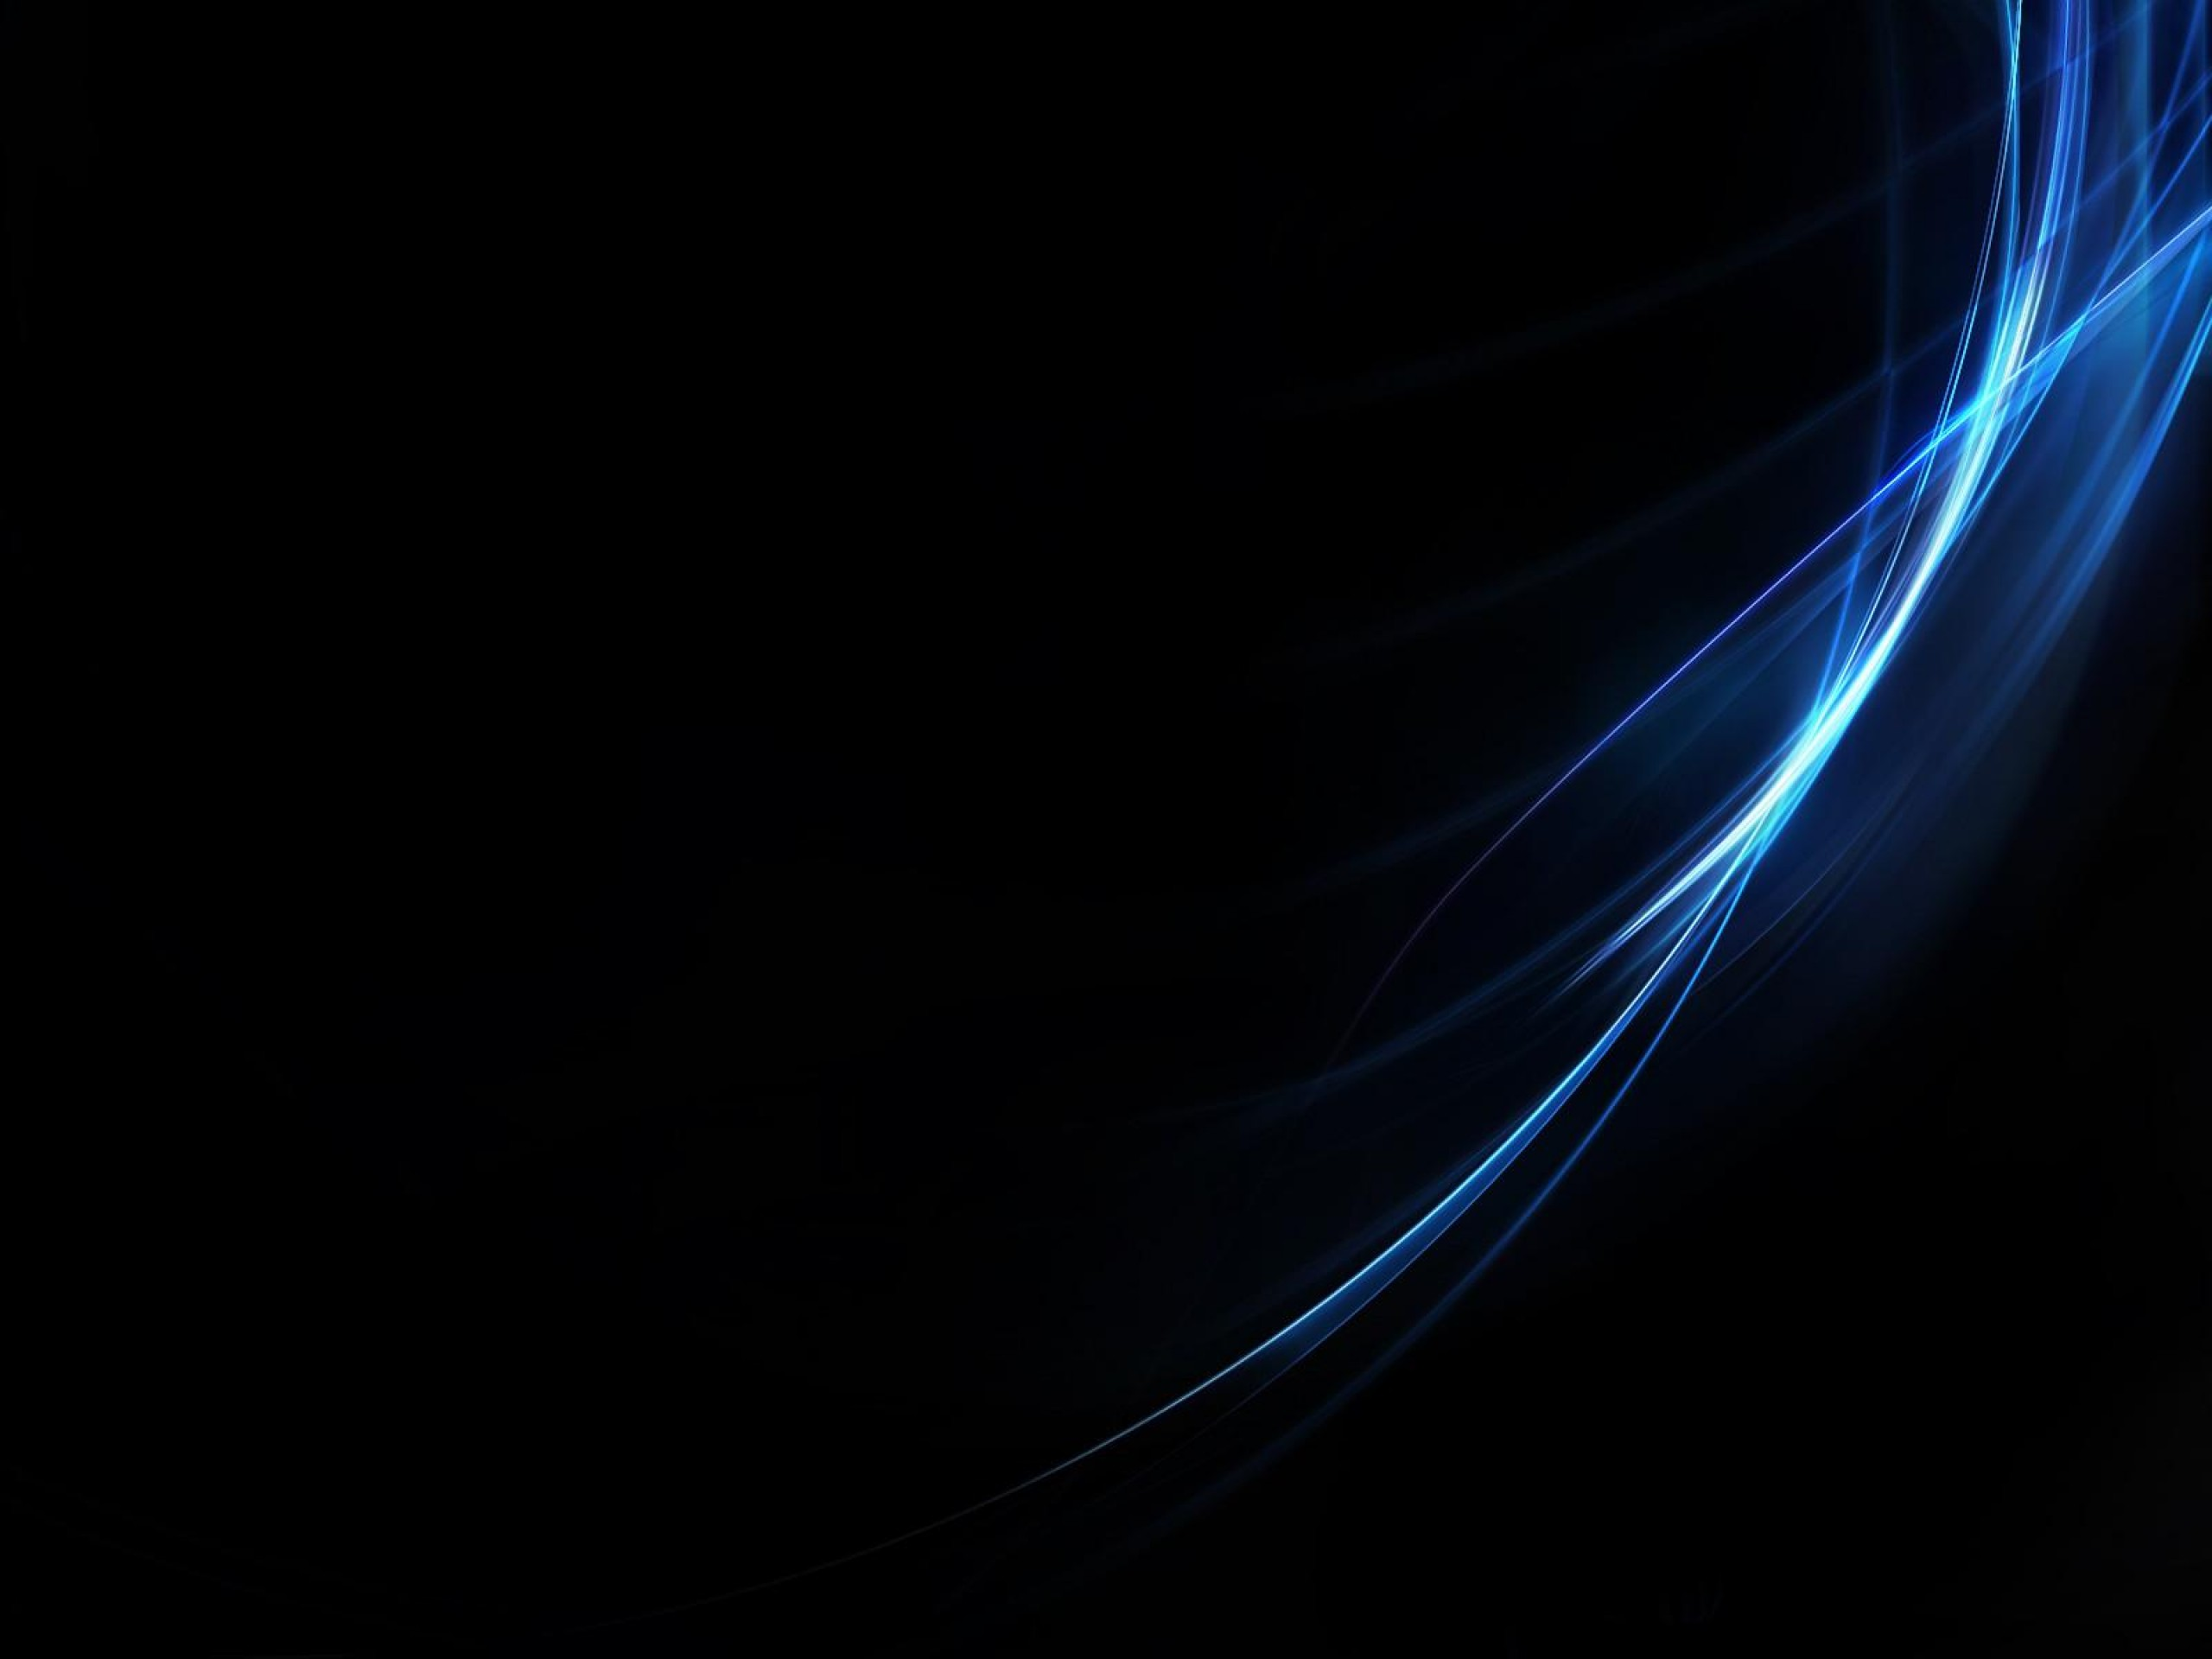 Collection of Blue And Black Backgrounds on HDWallpapers